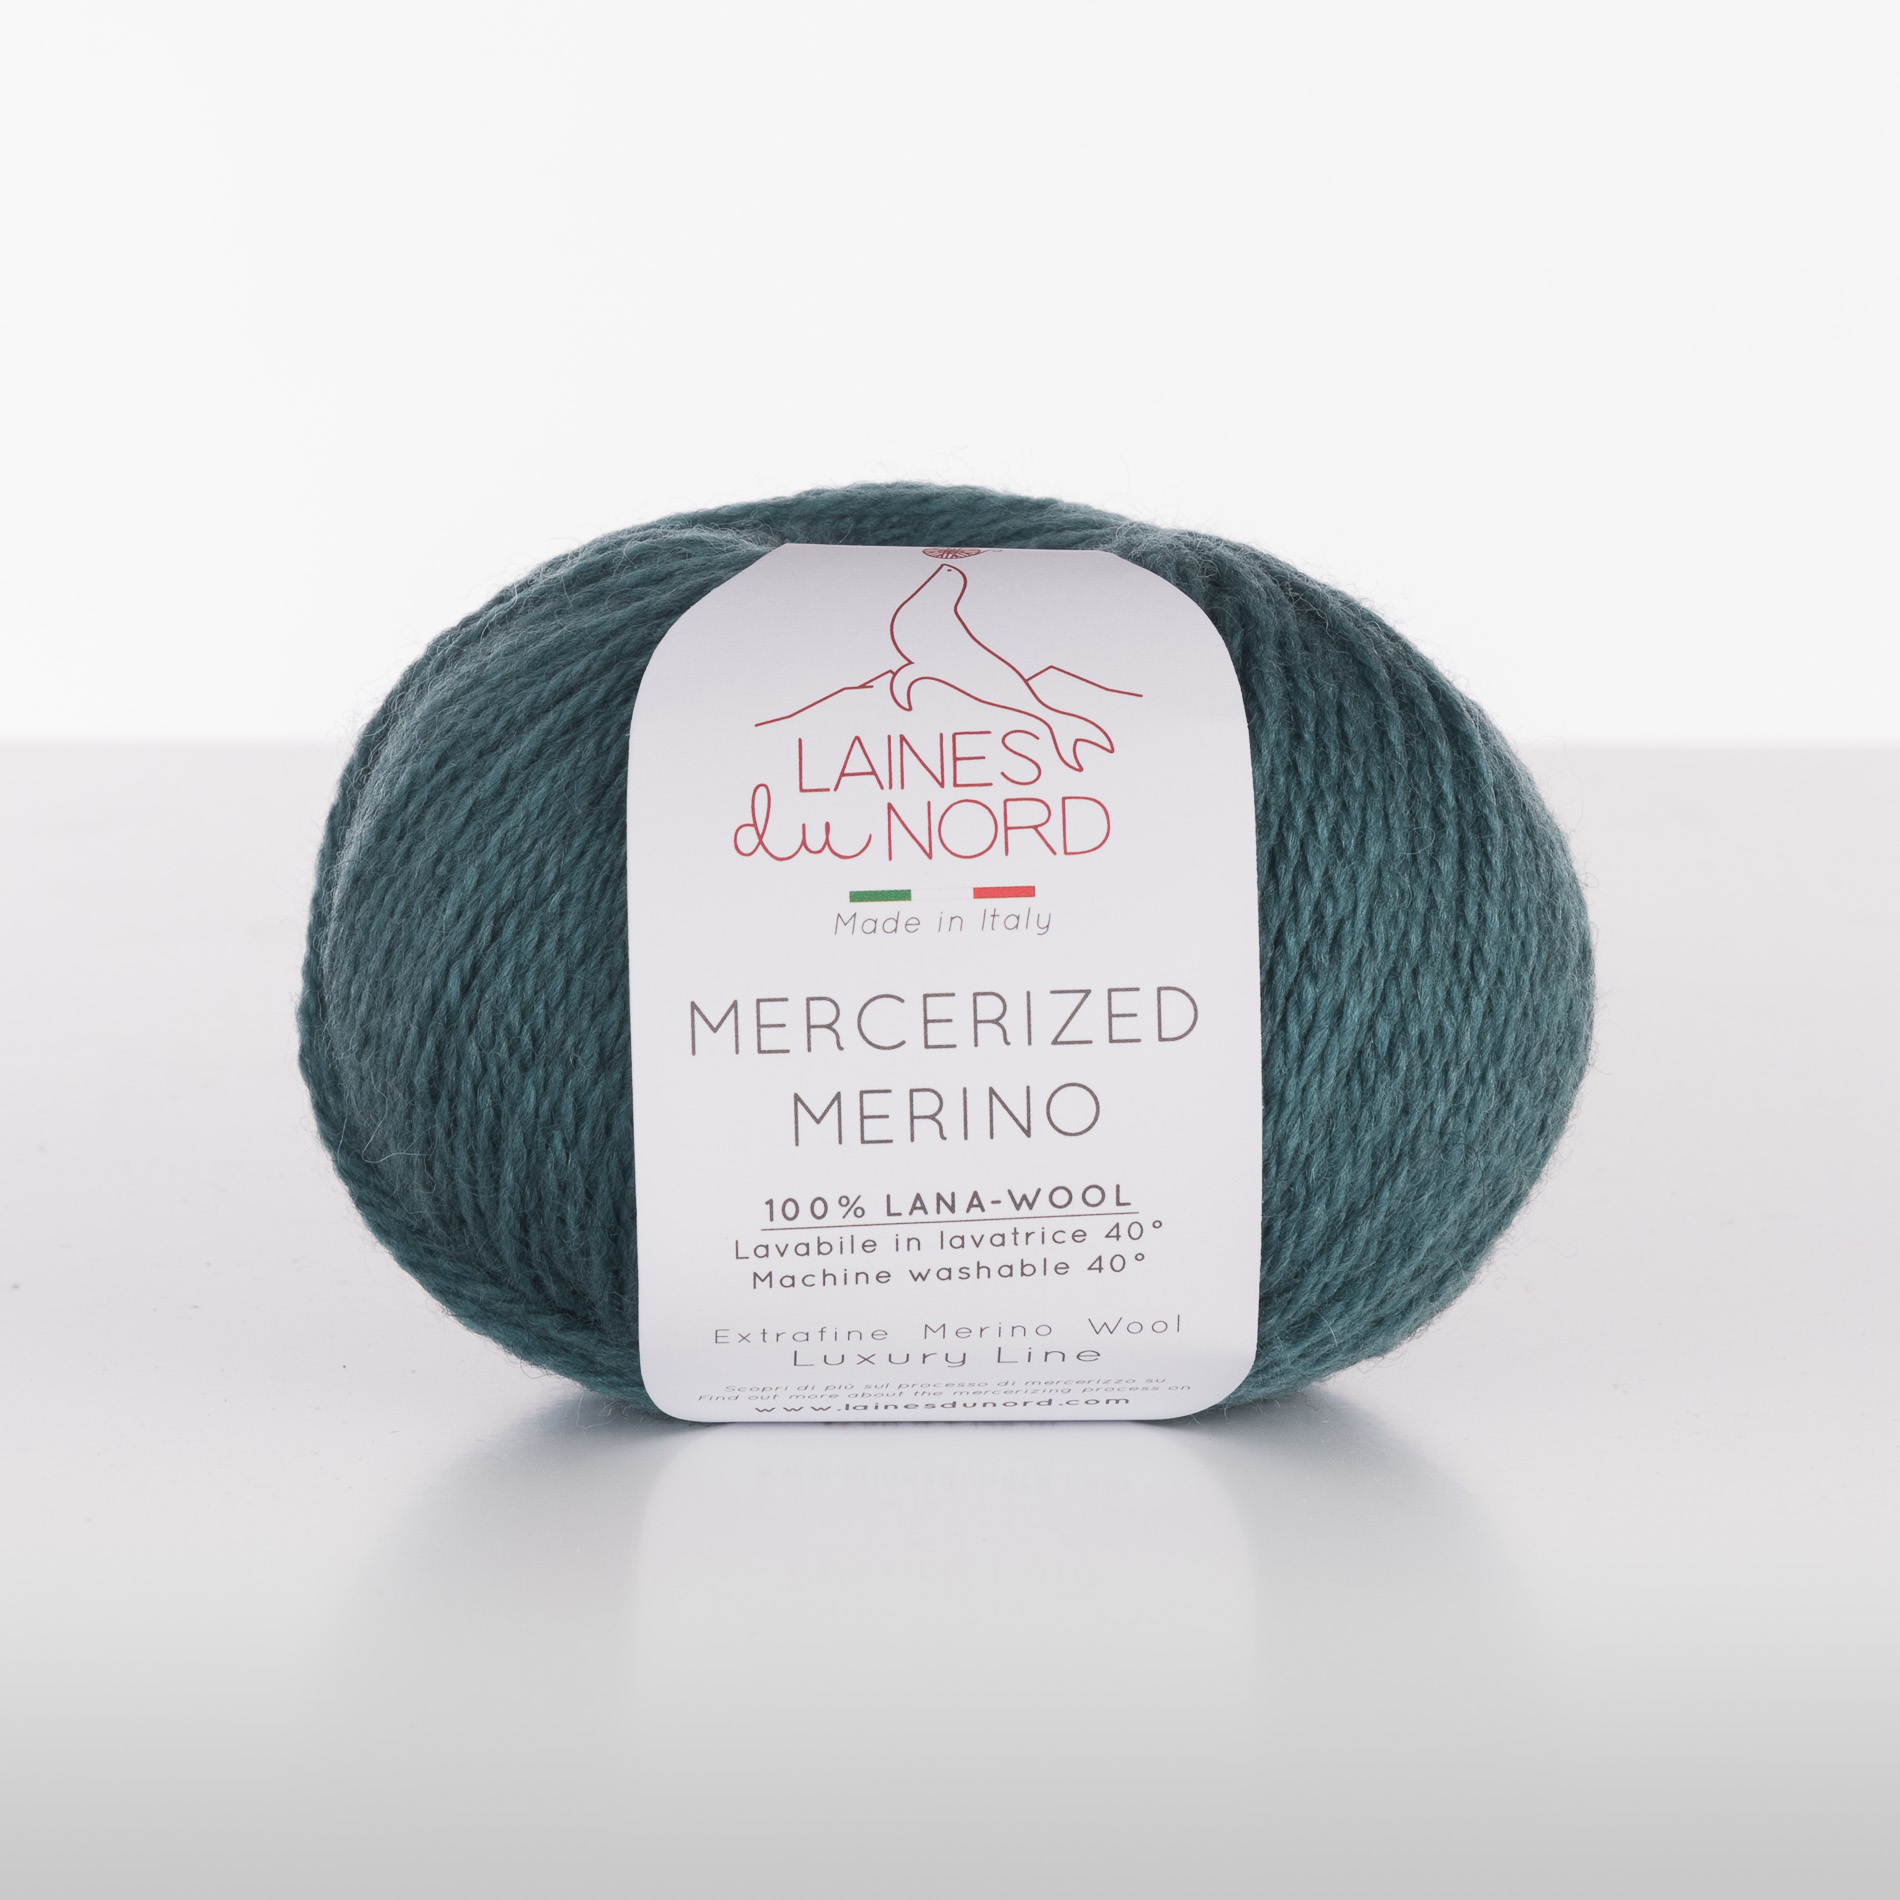 Mercerized Merino (100% шерсть, 50г/125м) 9.50 BYN